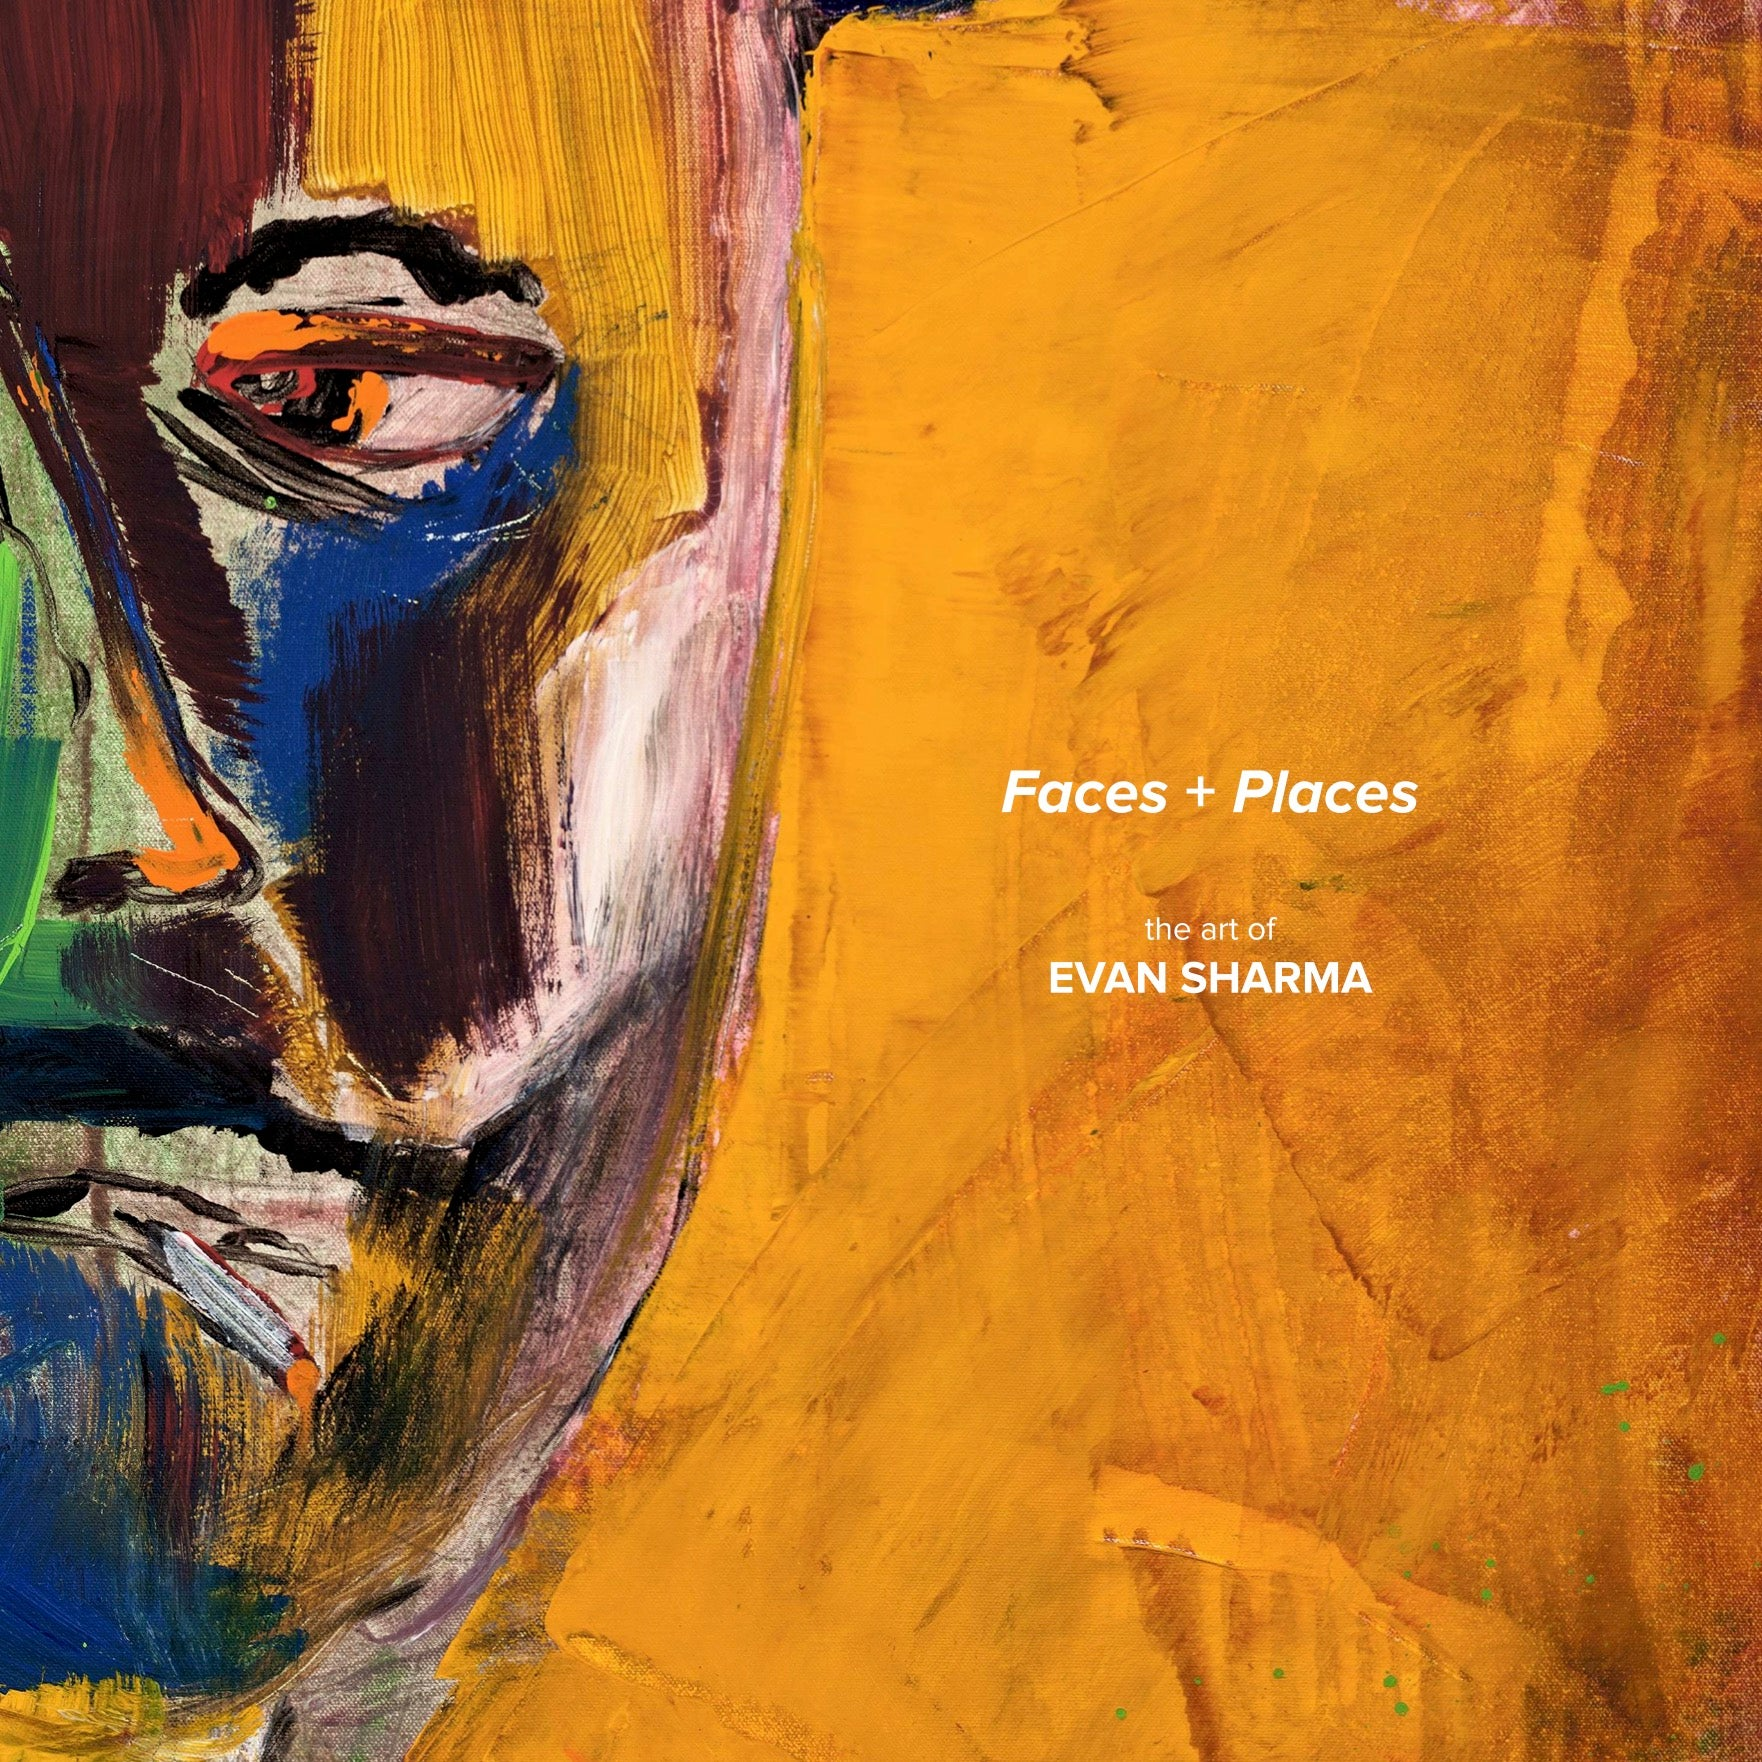 Faces + Places - Preorder